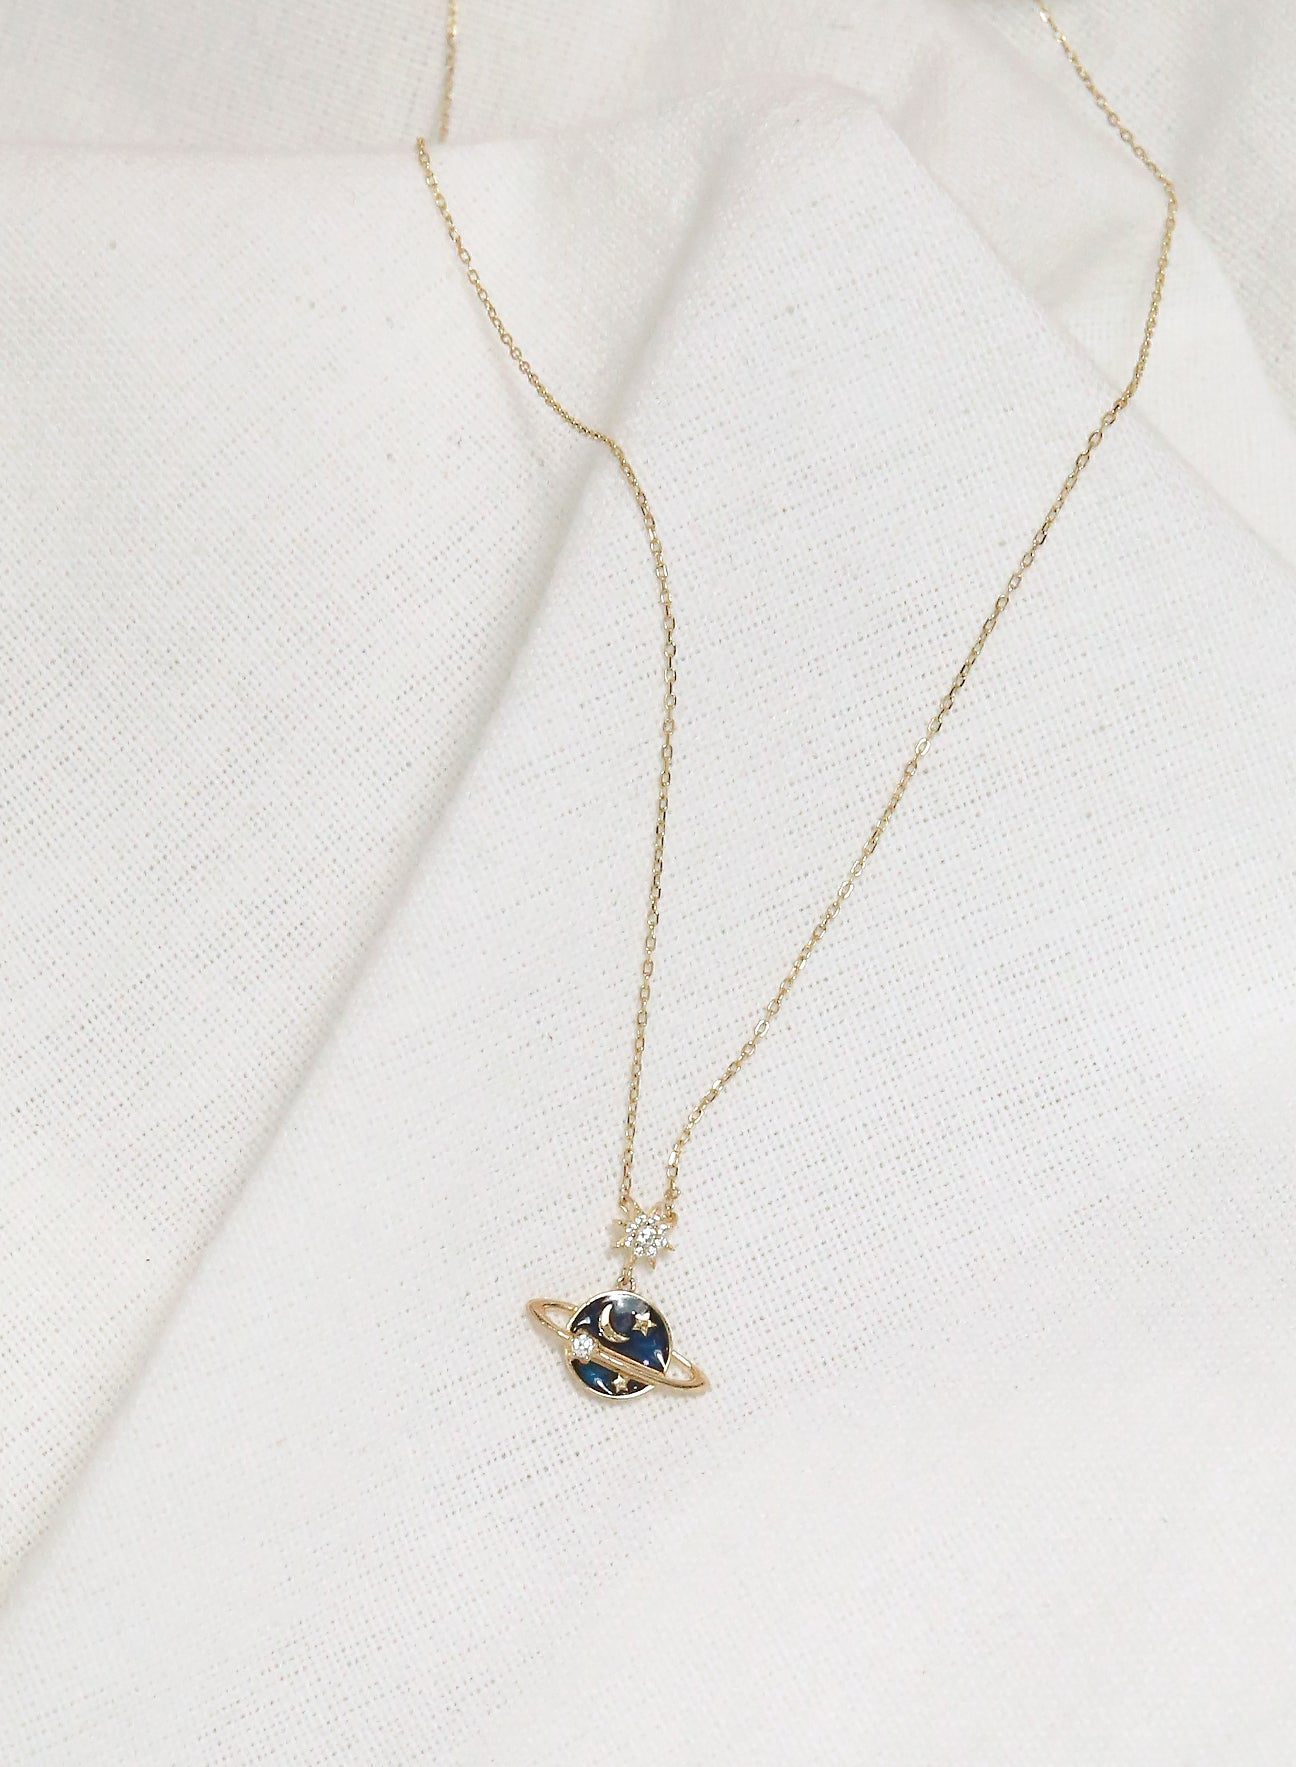 Starry Saturn Necklace (Gold)